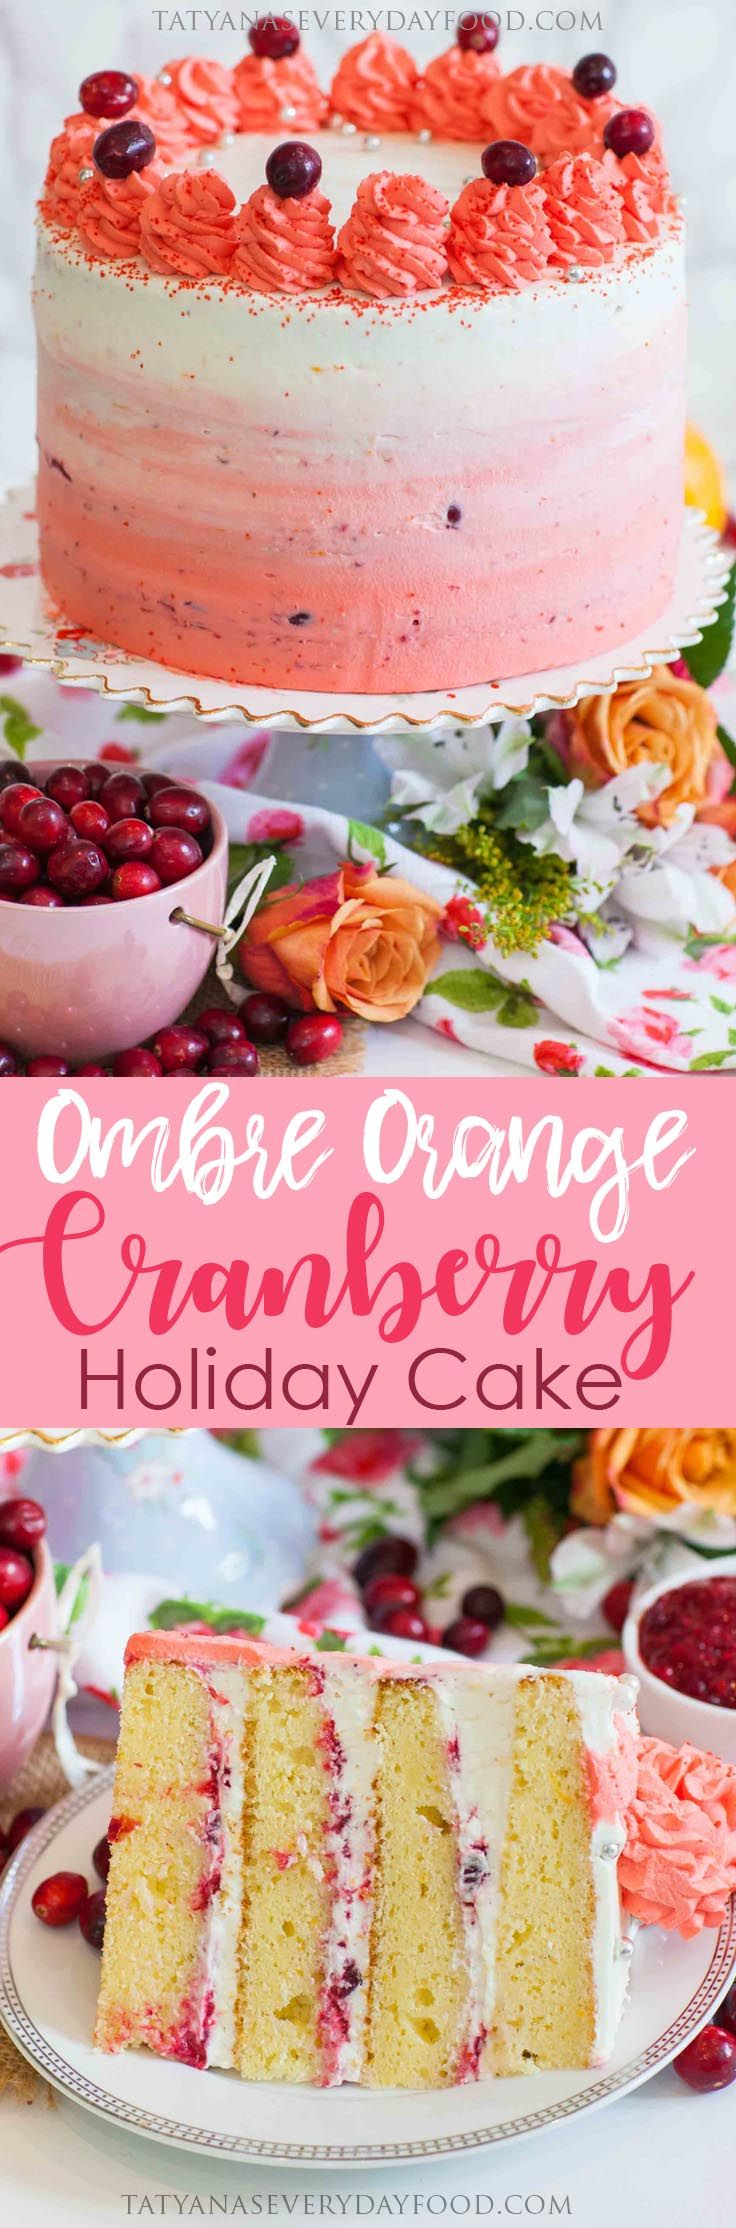 Ombre Orange Cranberry Cake - Tatyanas Everyday Food